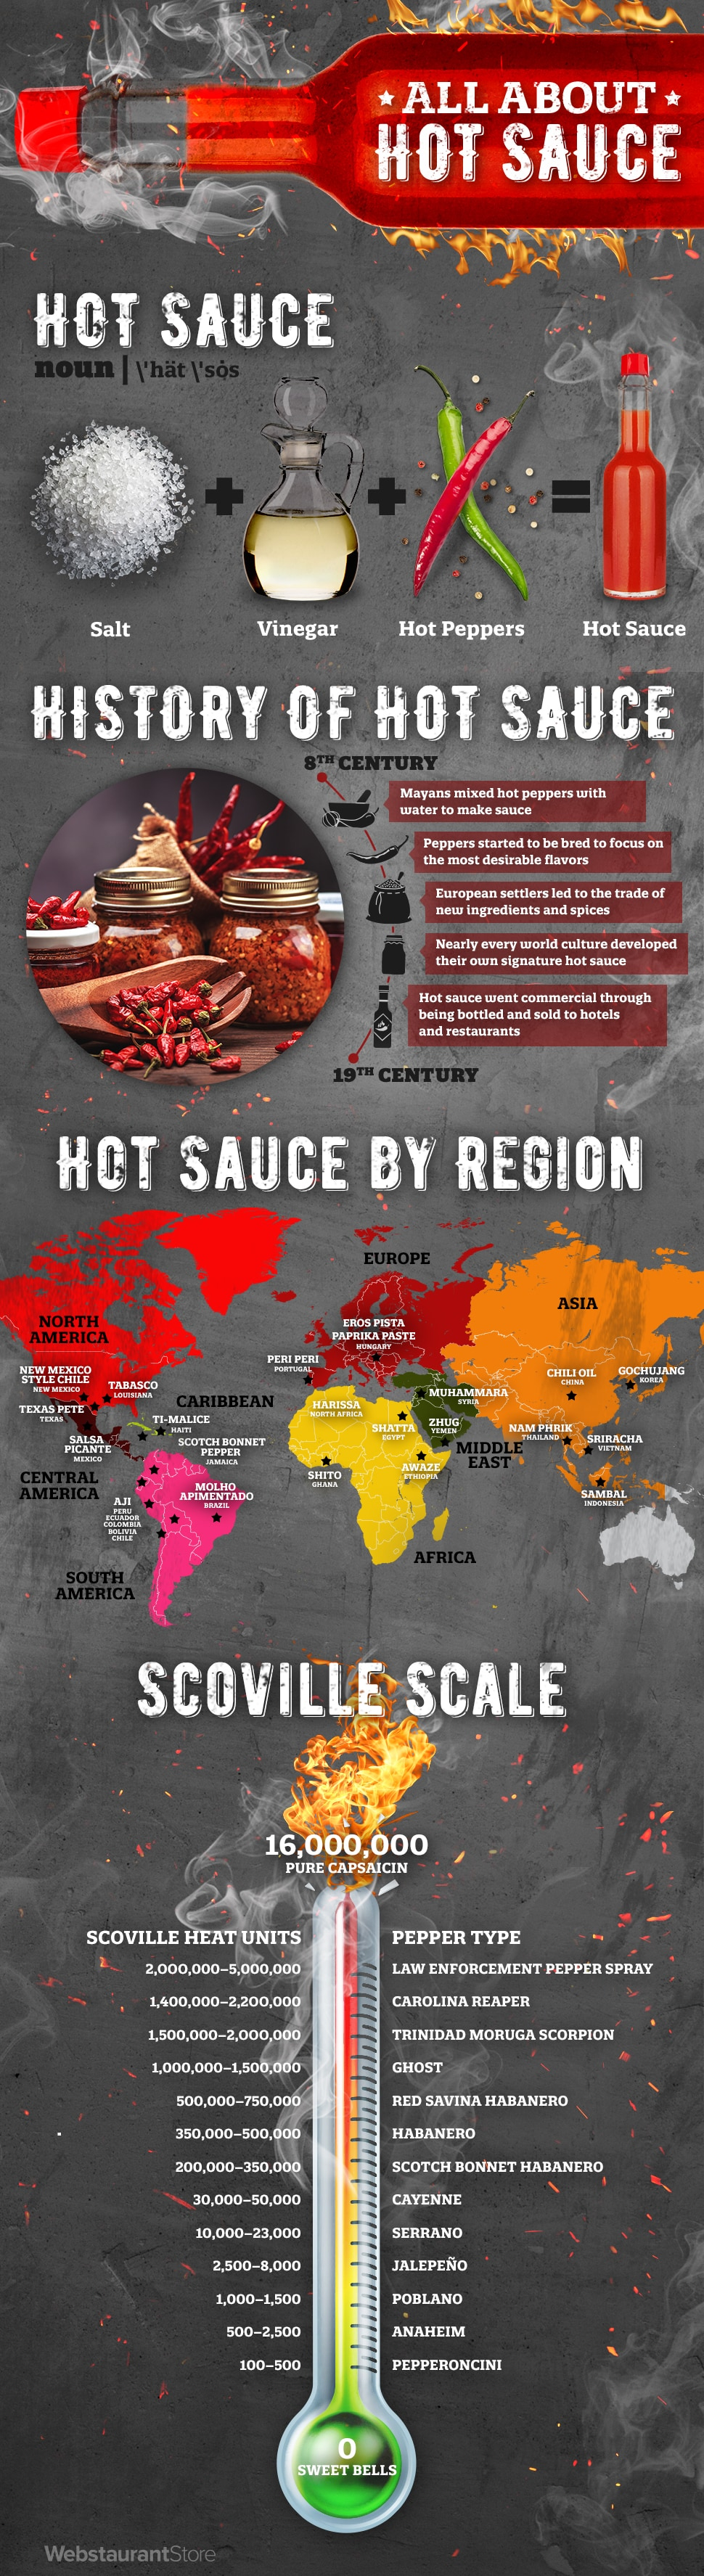 All about Hot Sauce